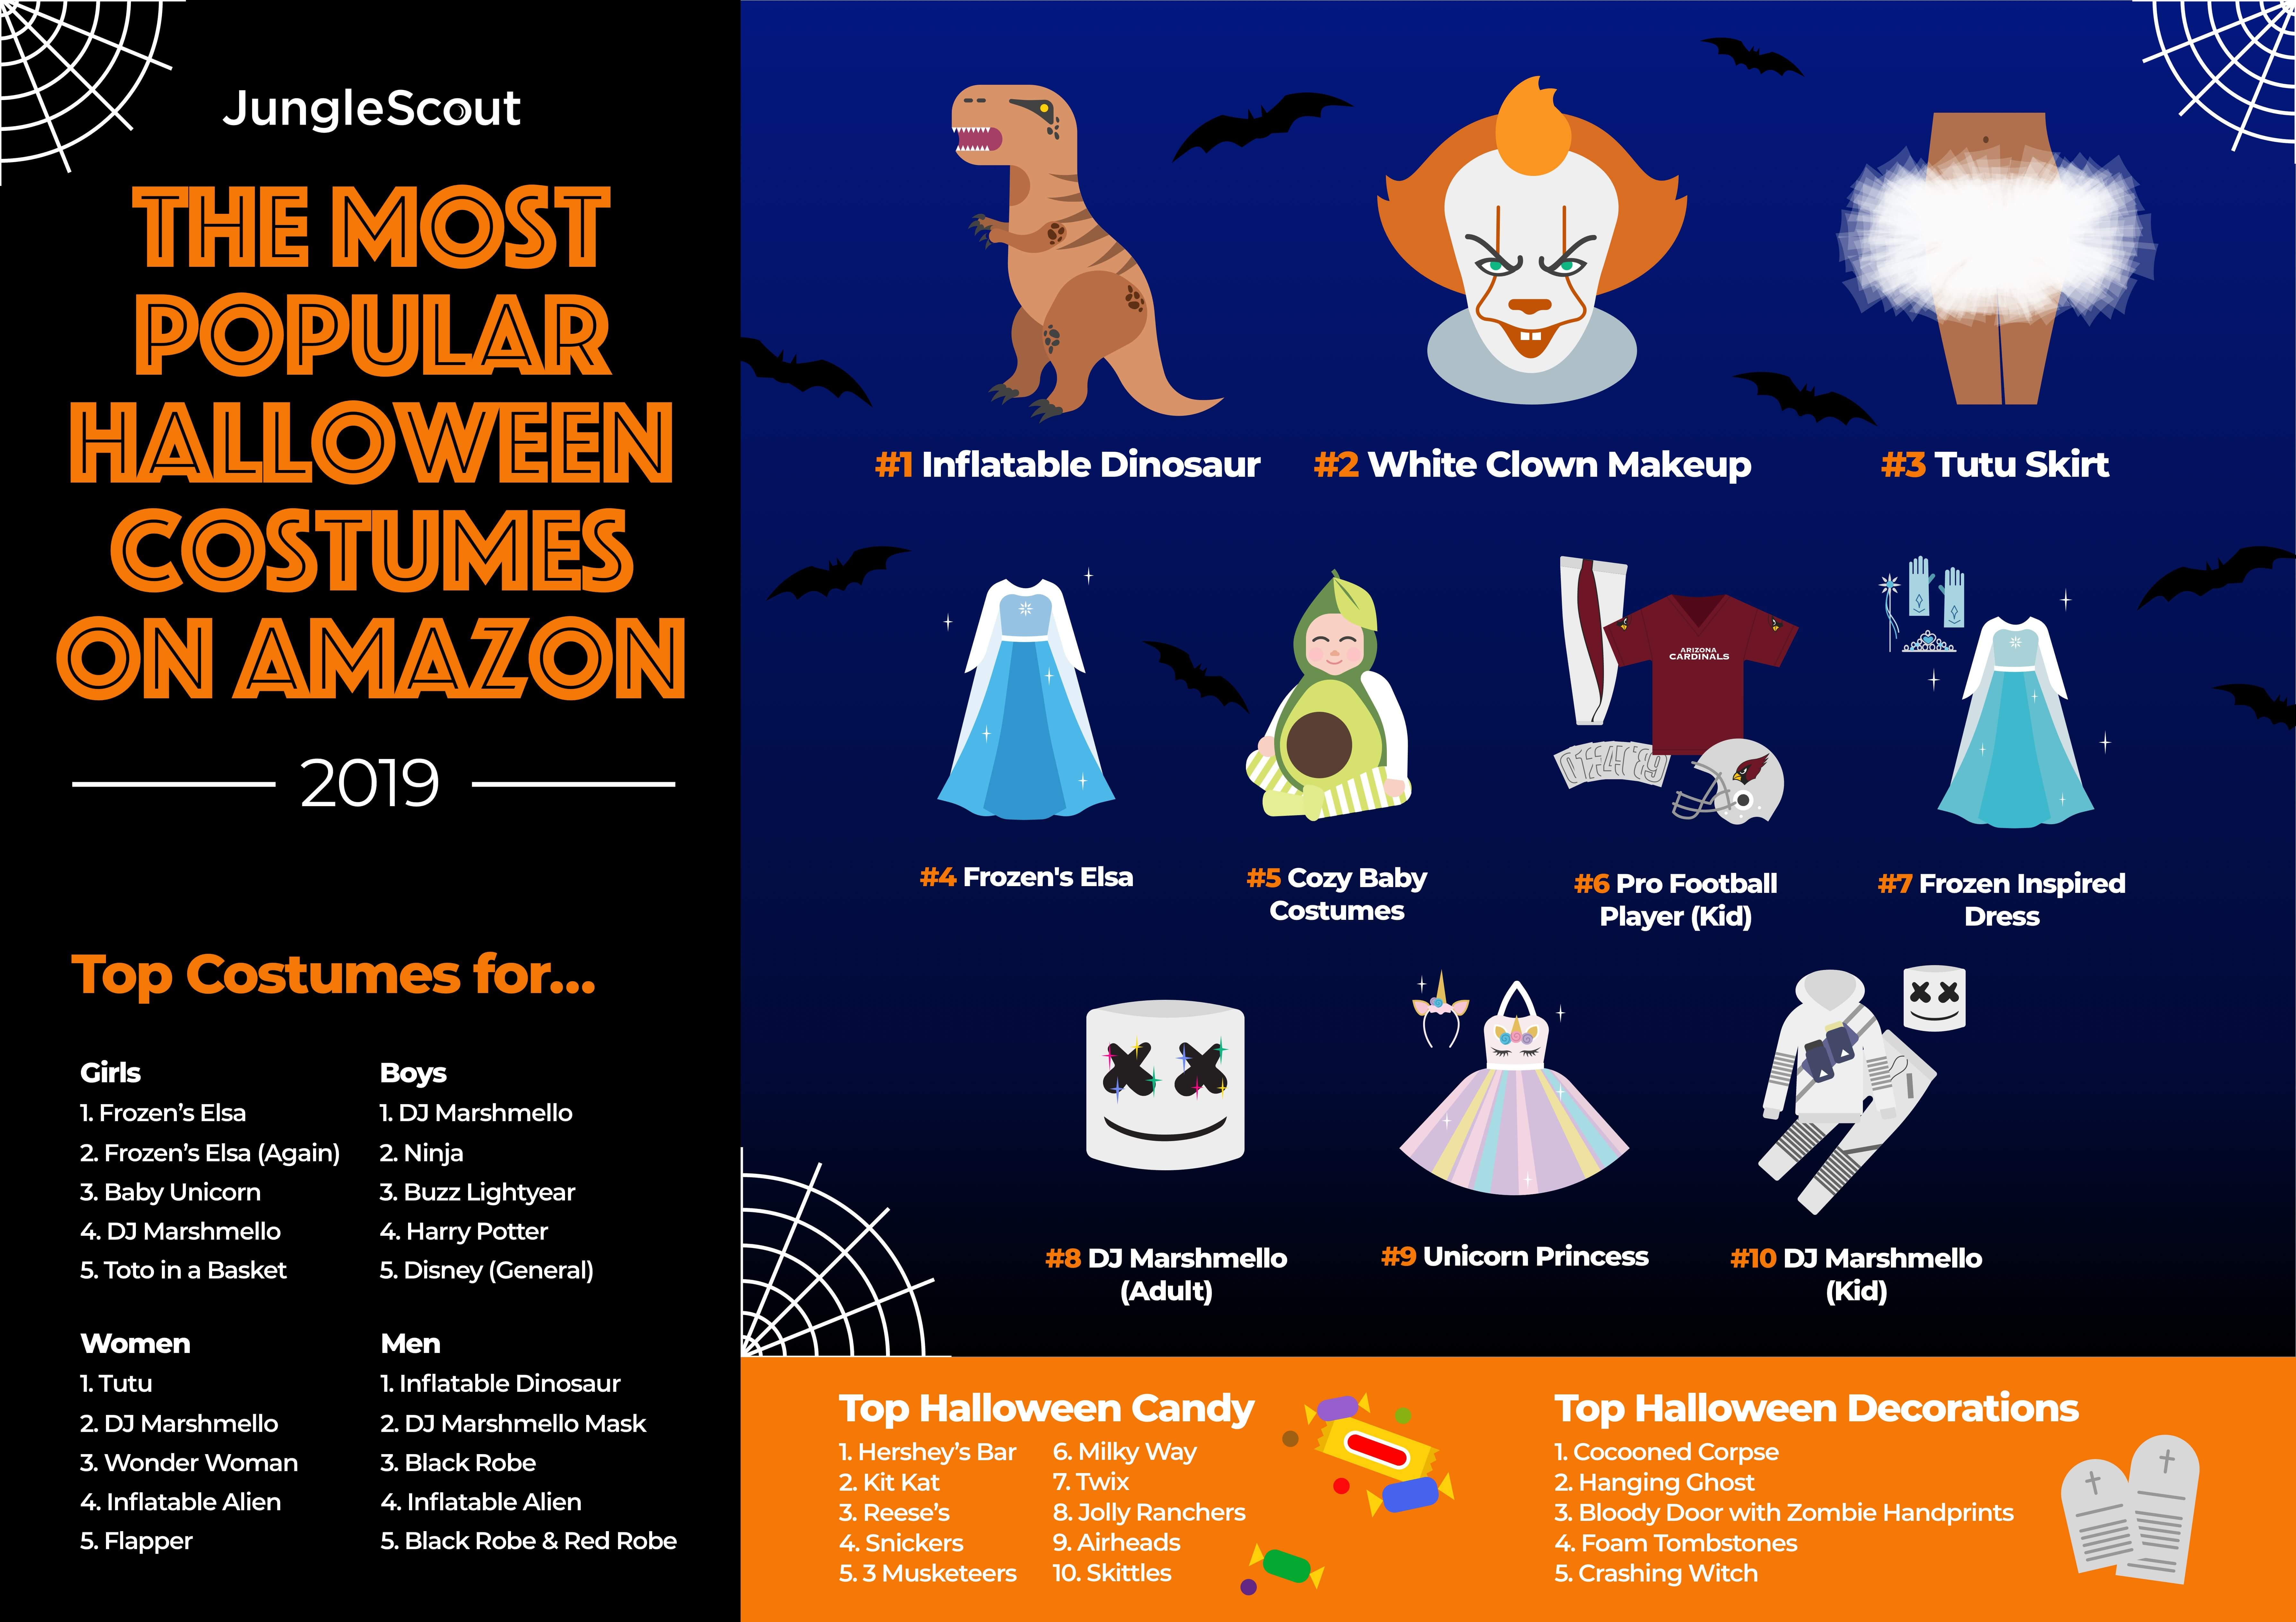 What Are The Most Popular Halloween Costumes On Amazon In 2019